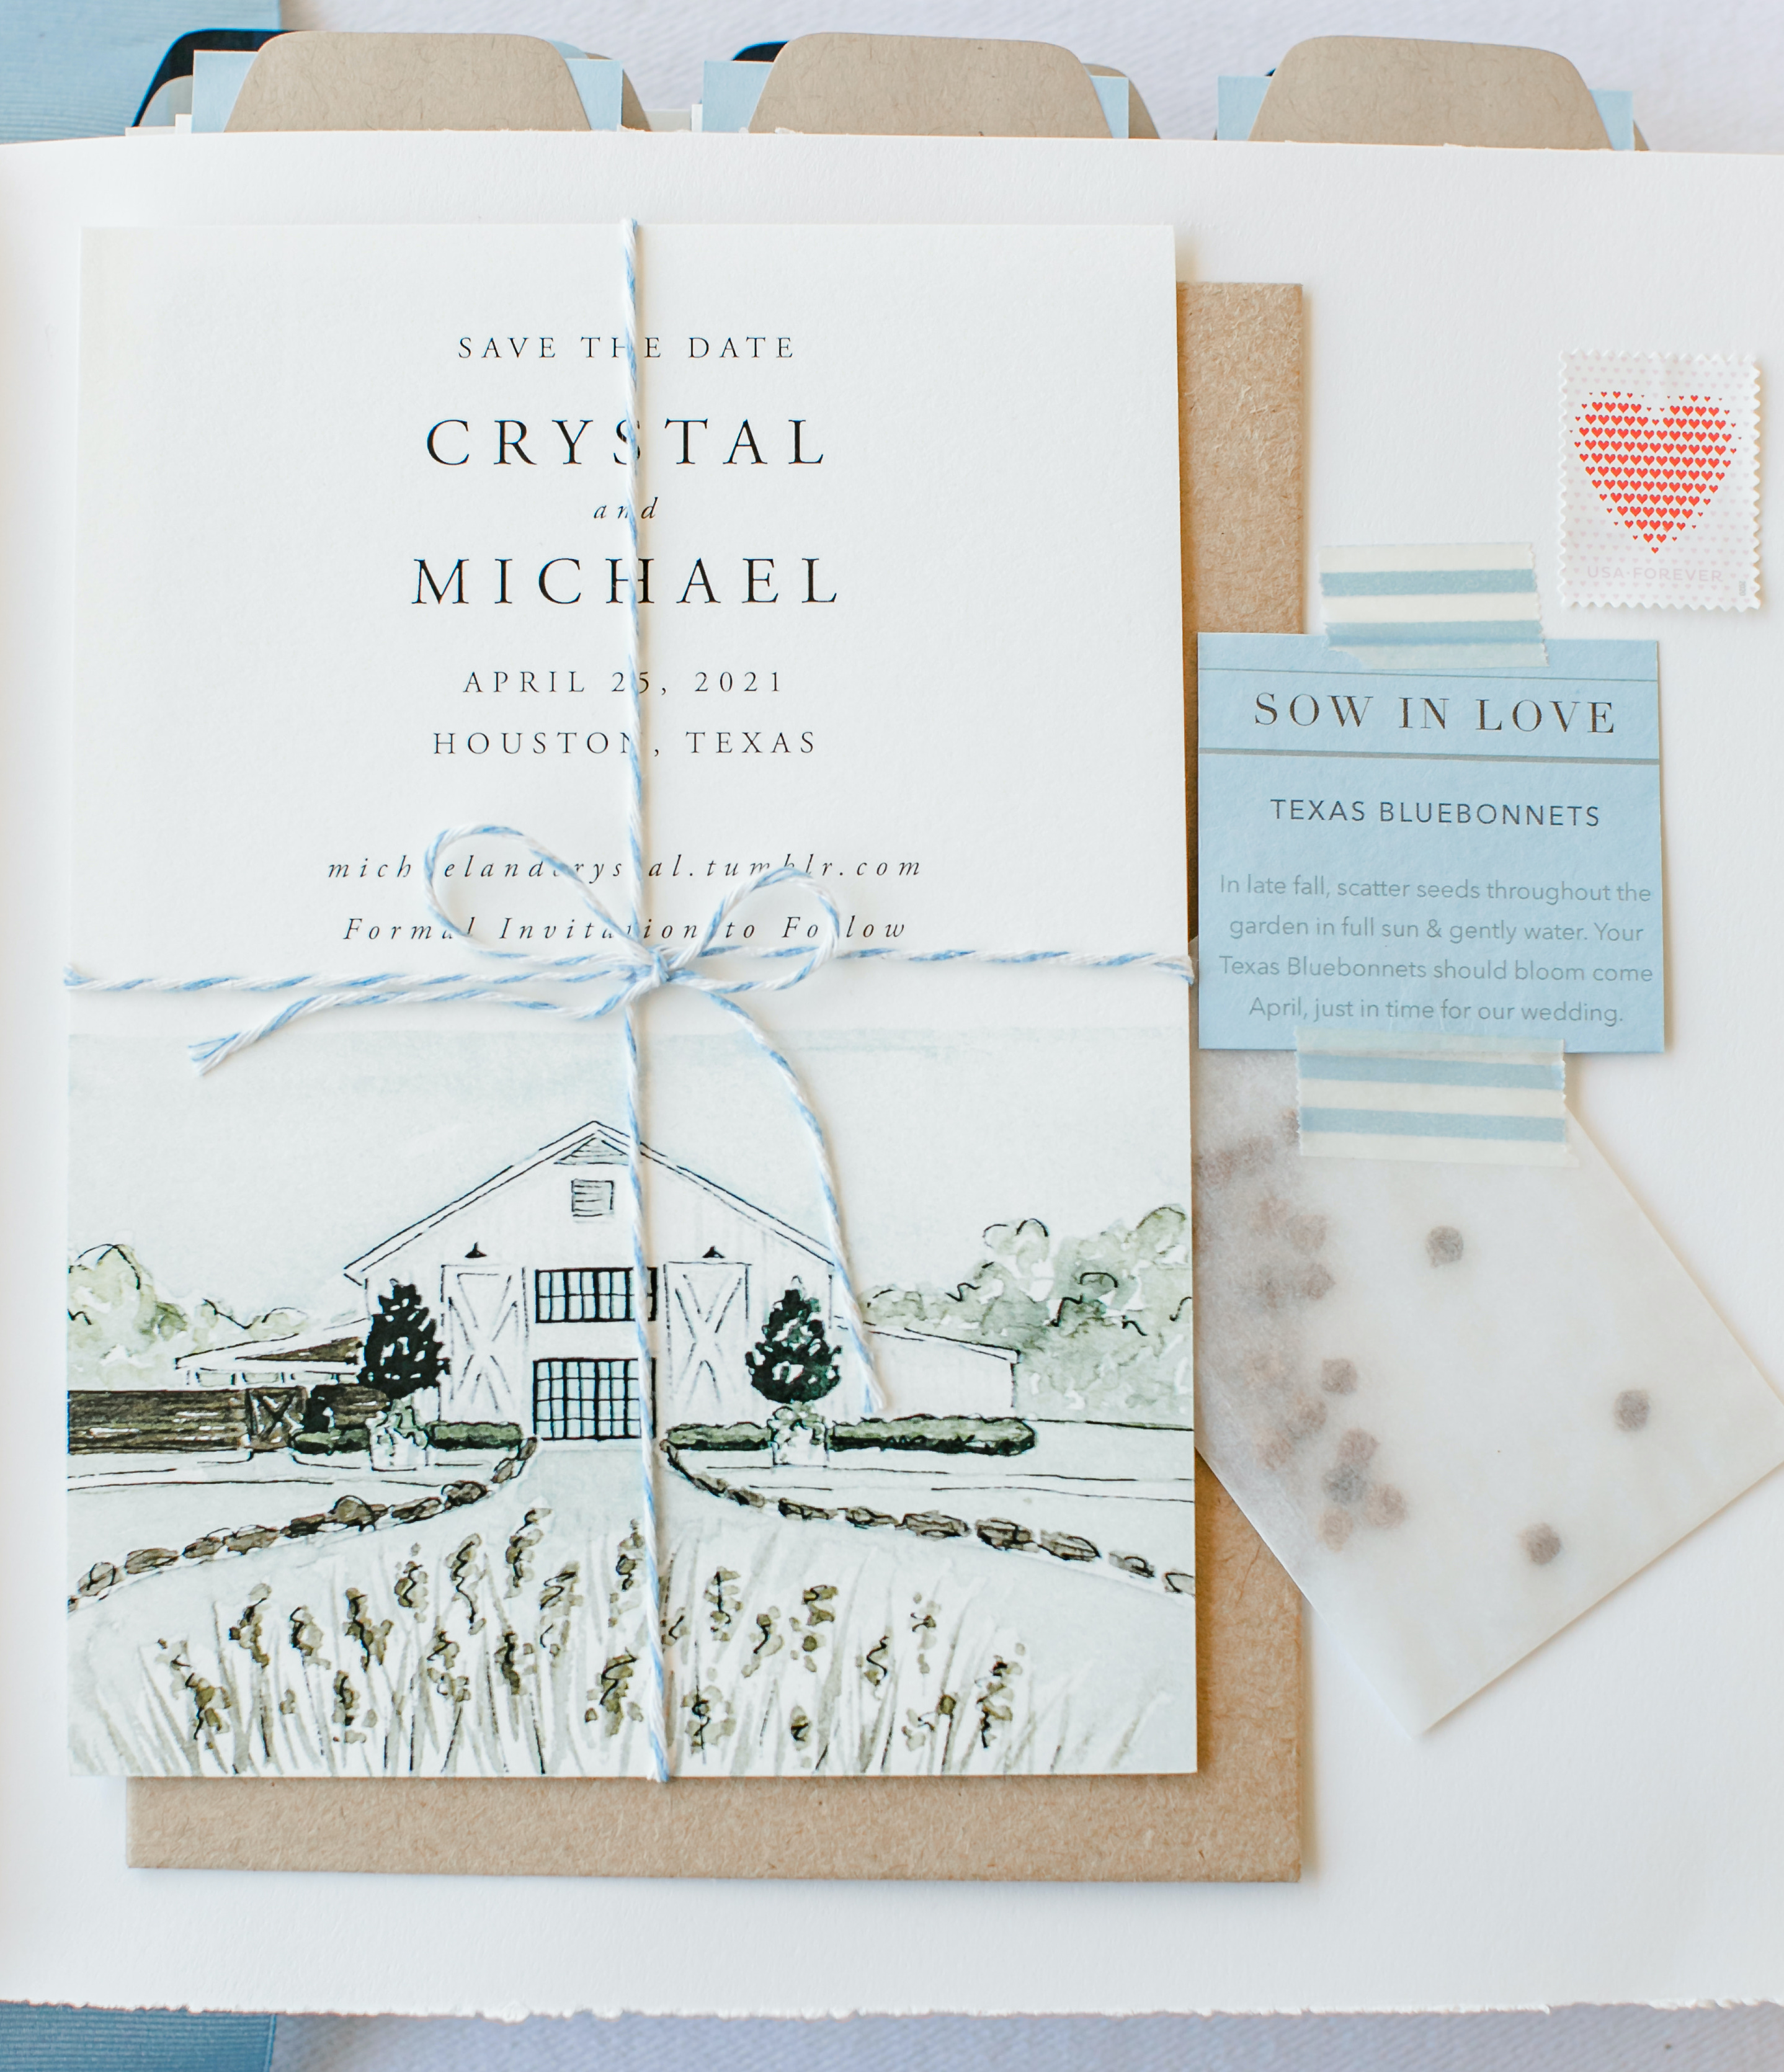 Crystal and Micheal's invitation to their friendly spring wedding.